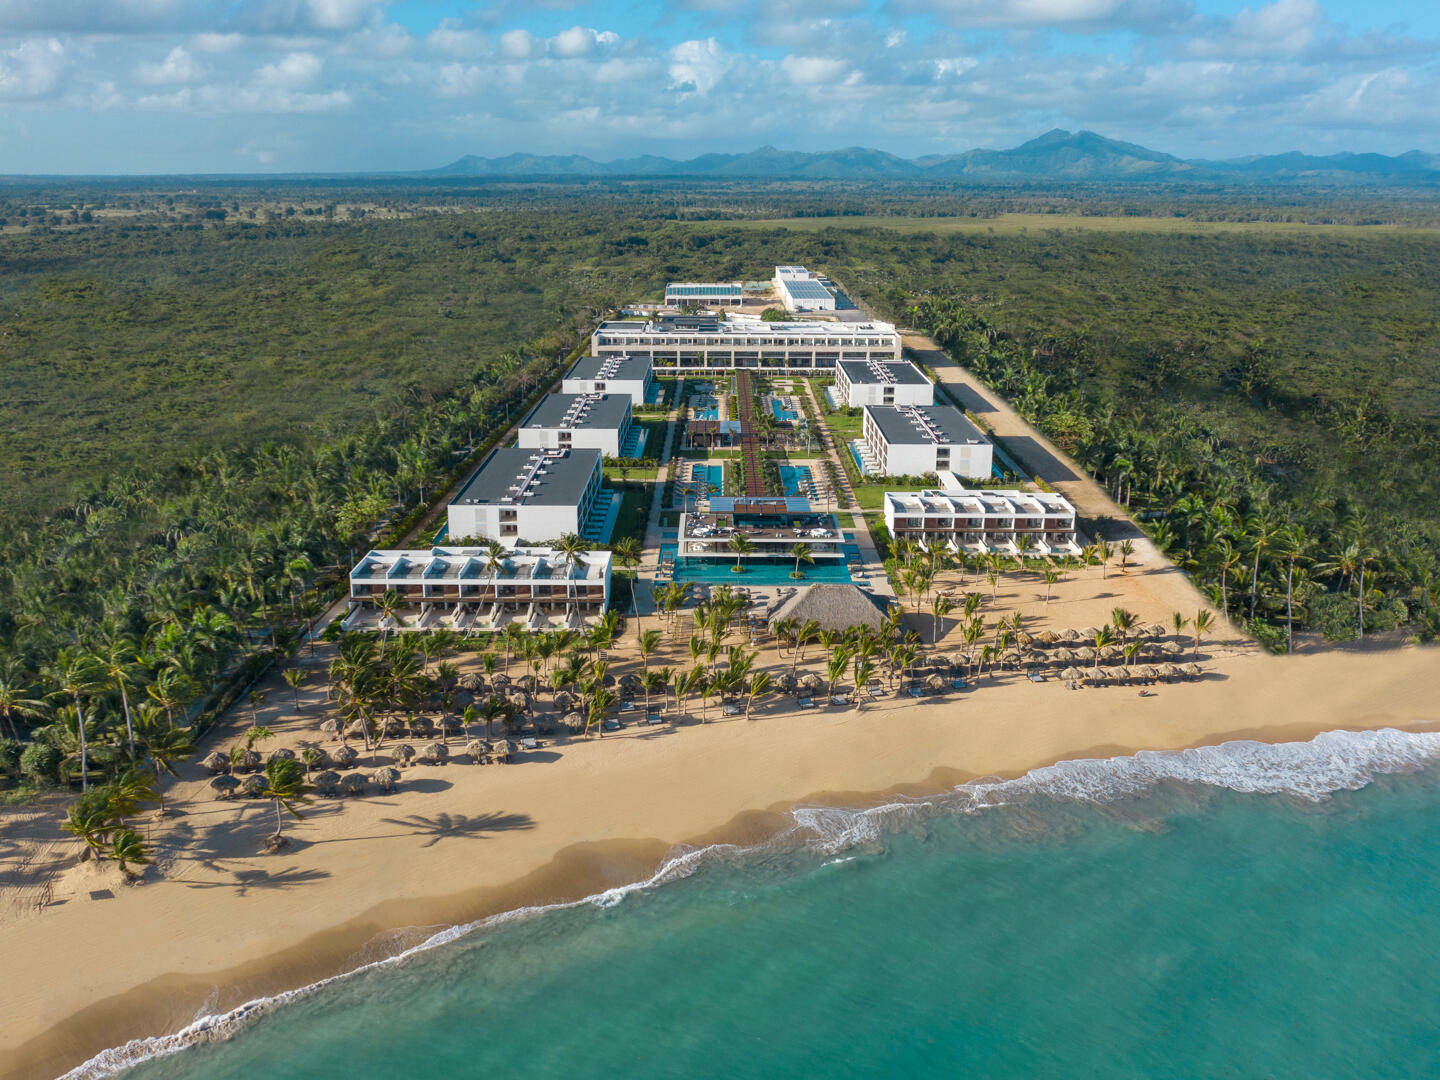 Exterior view of a hotel with ocean in the Punta Cana